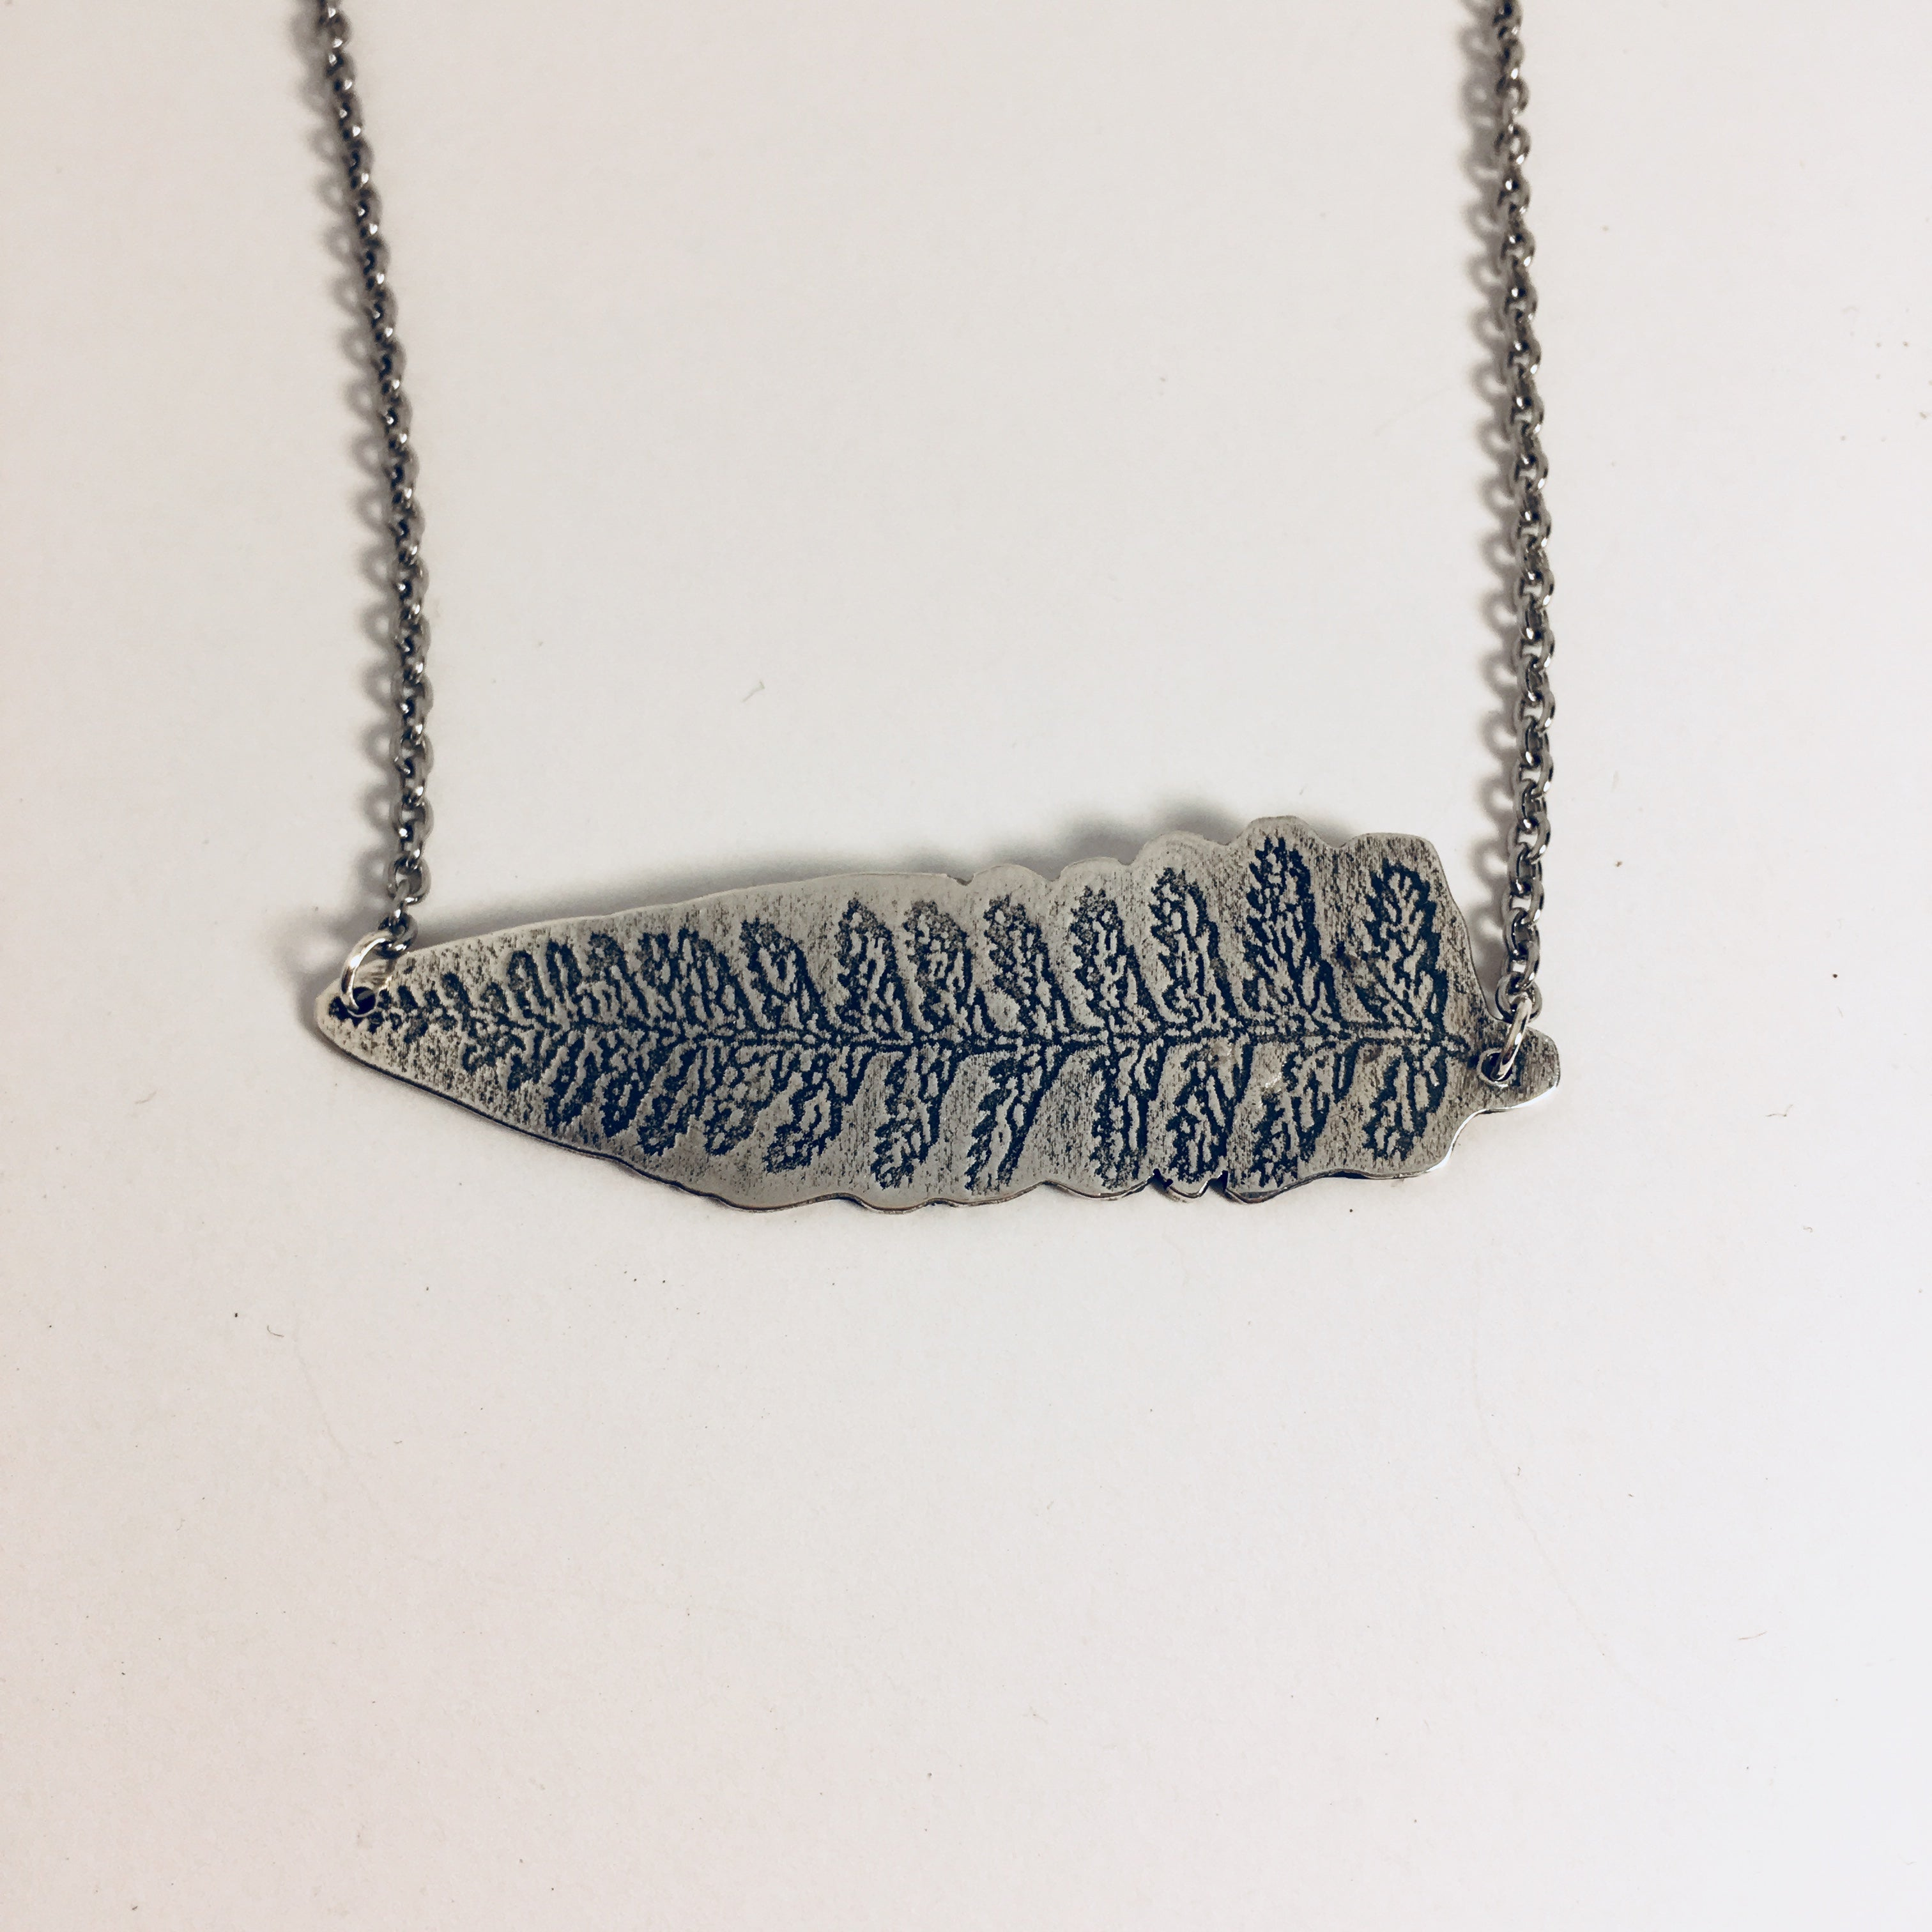 Fern Bar Necklace, sterling silver